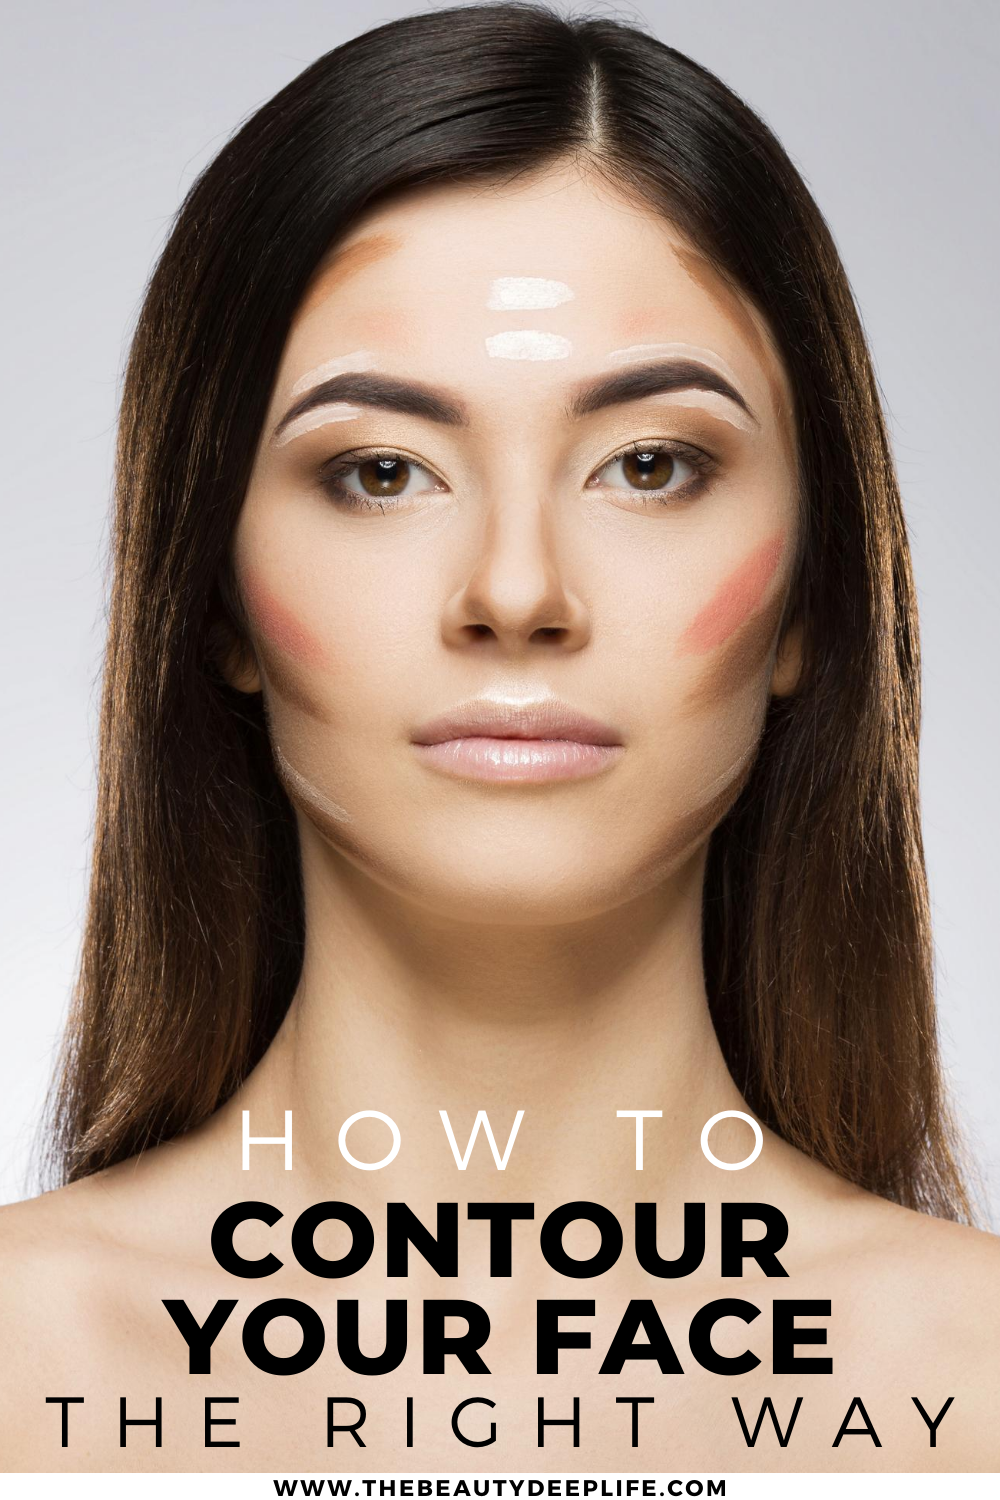 How To Contour Your Face The Right Way in 11  How to contour